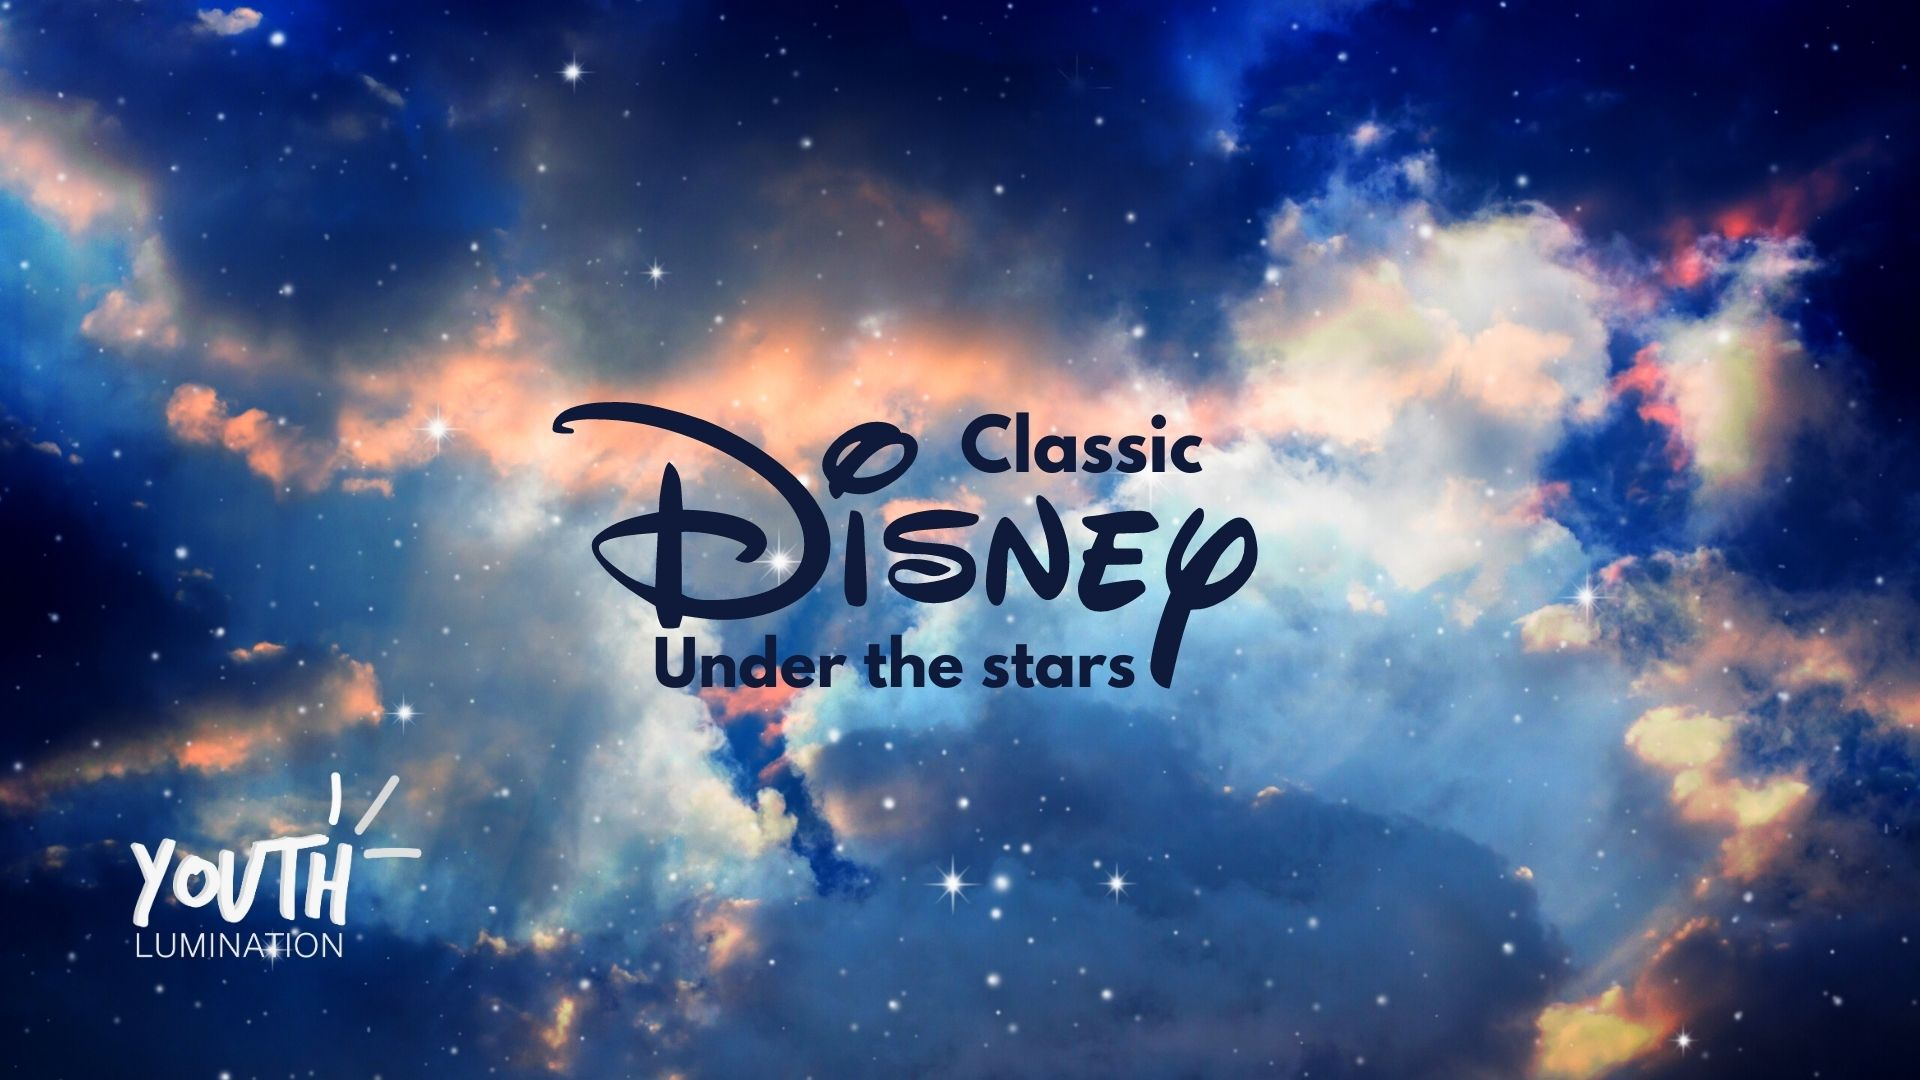 Classic Disney Feature Image for a night Under the Stars